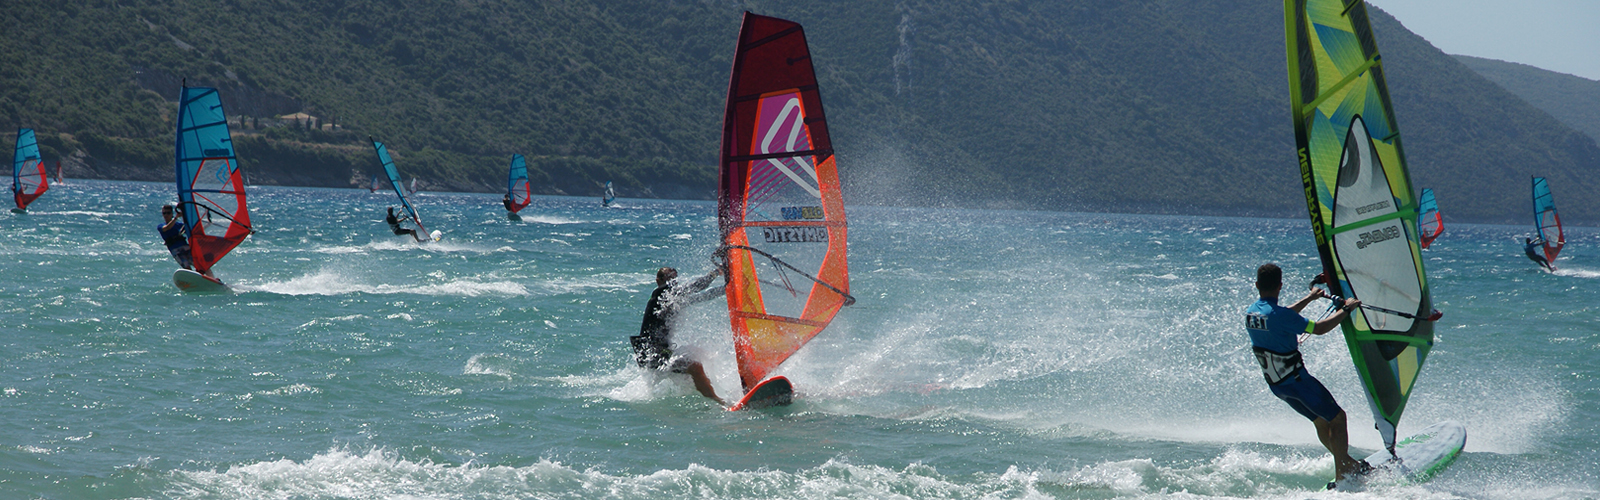 Windsurfing with Flying Fish